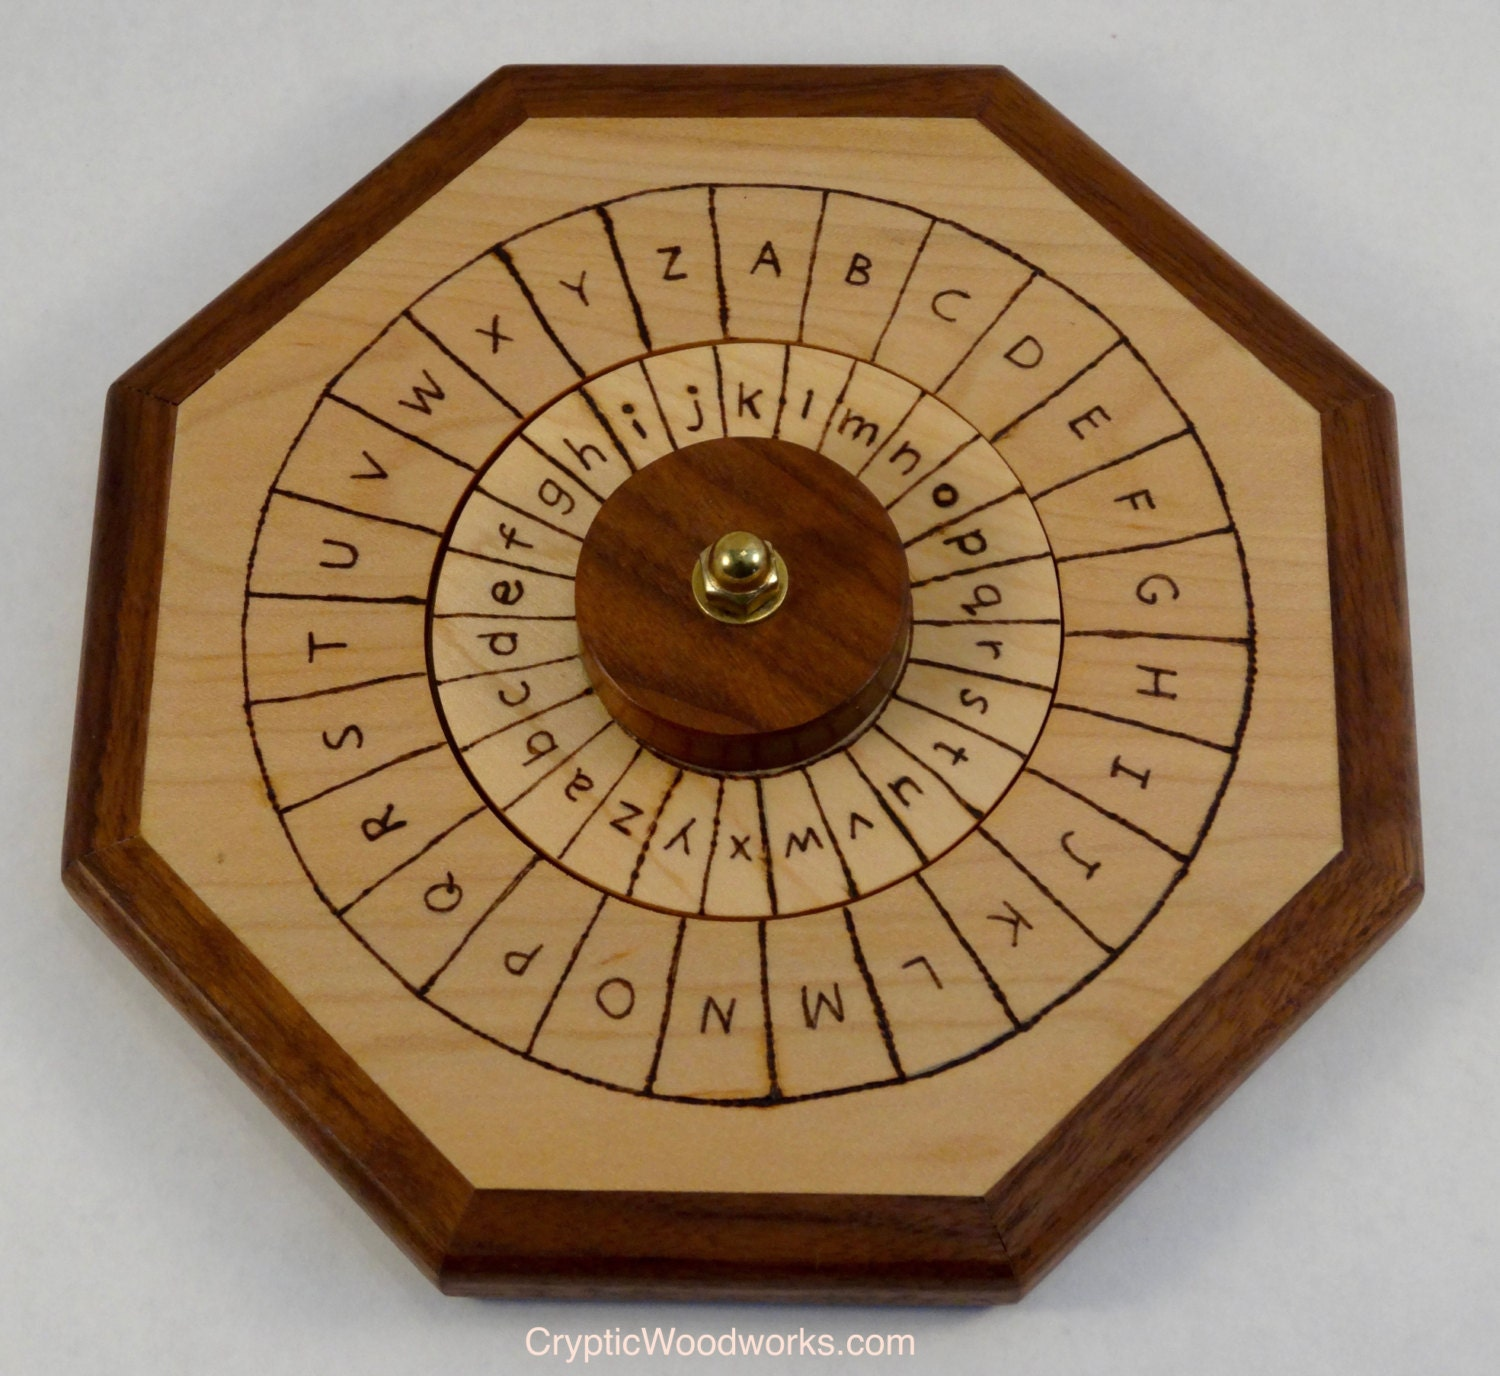 Wooden Cipher Wheel English Plain Text And English Cipher